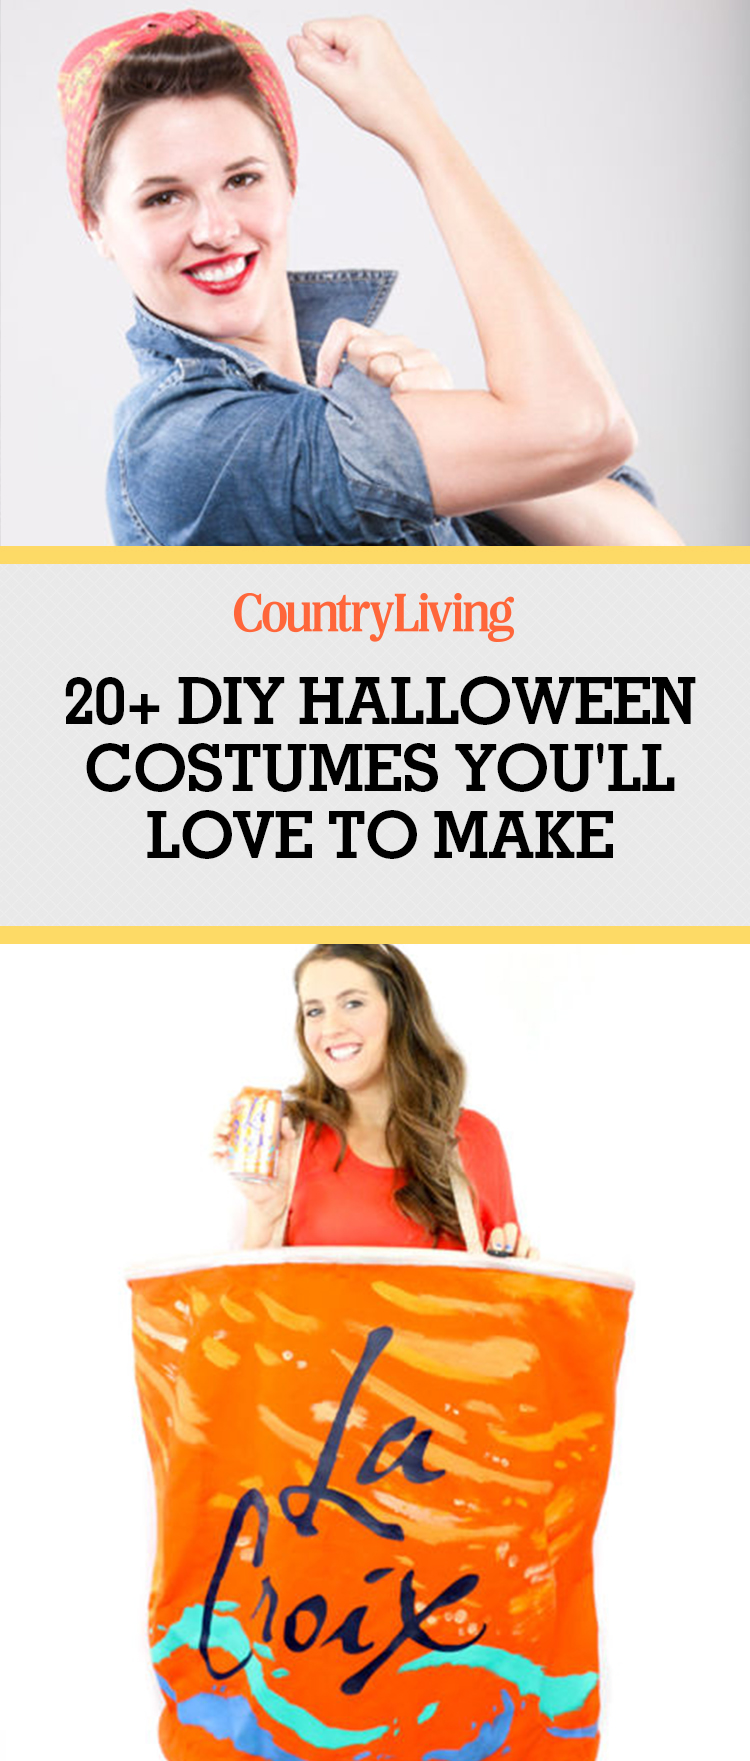 21 diy halloween costumes for women easy last minute homemade costumes for adults. Black Bedroom Furniture Sets. Home Design Ideas